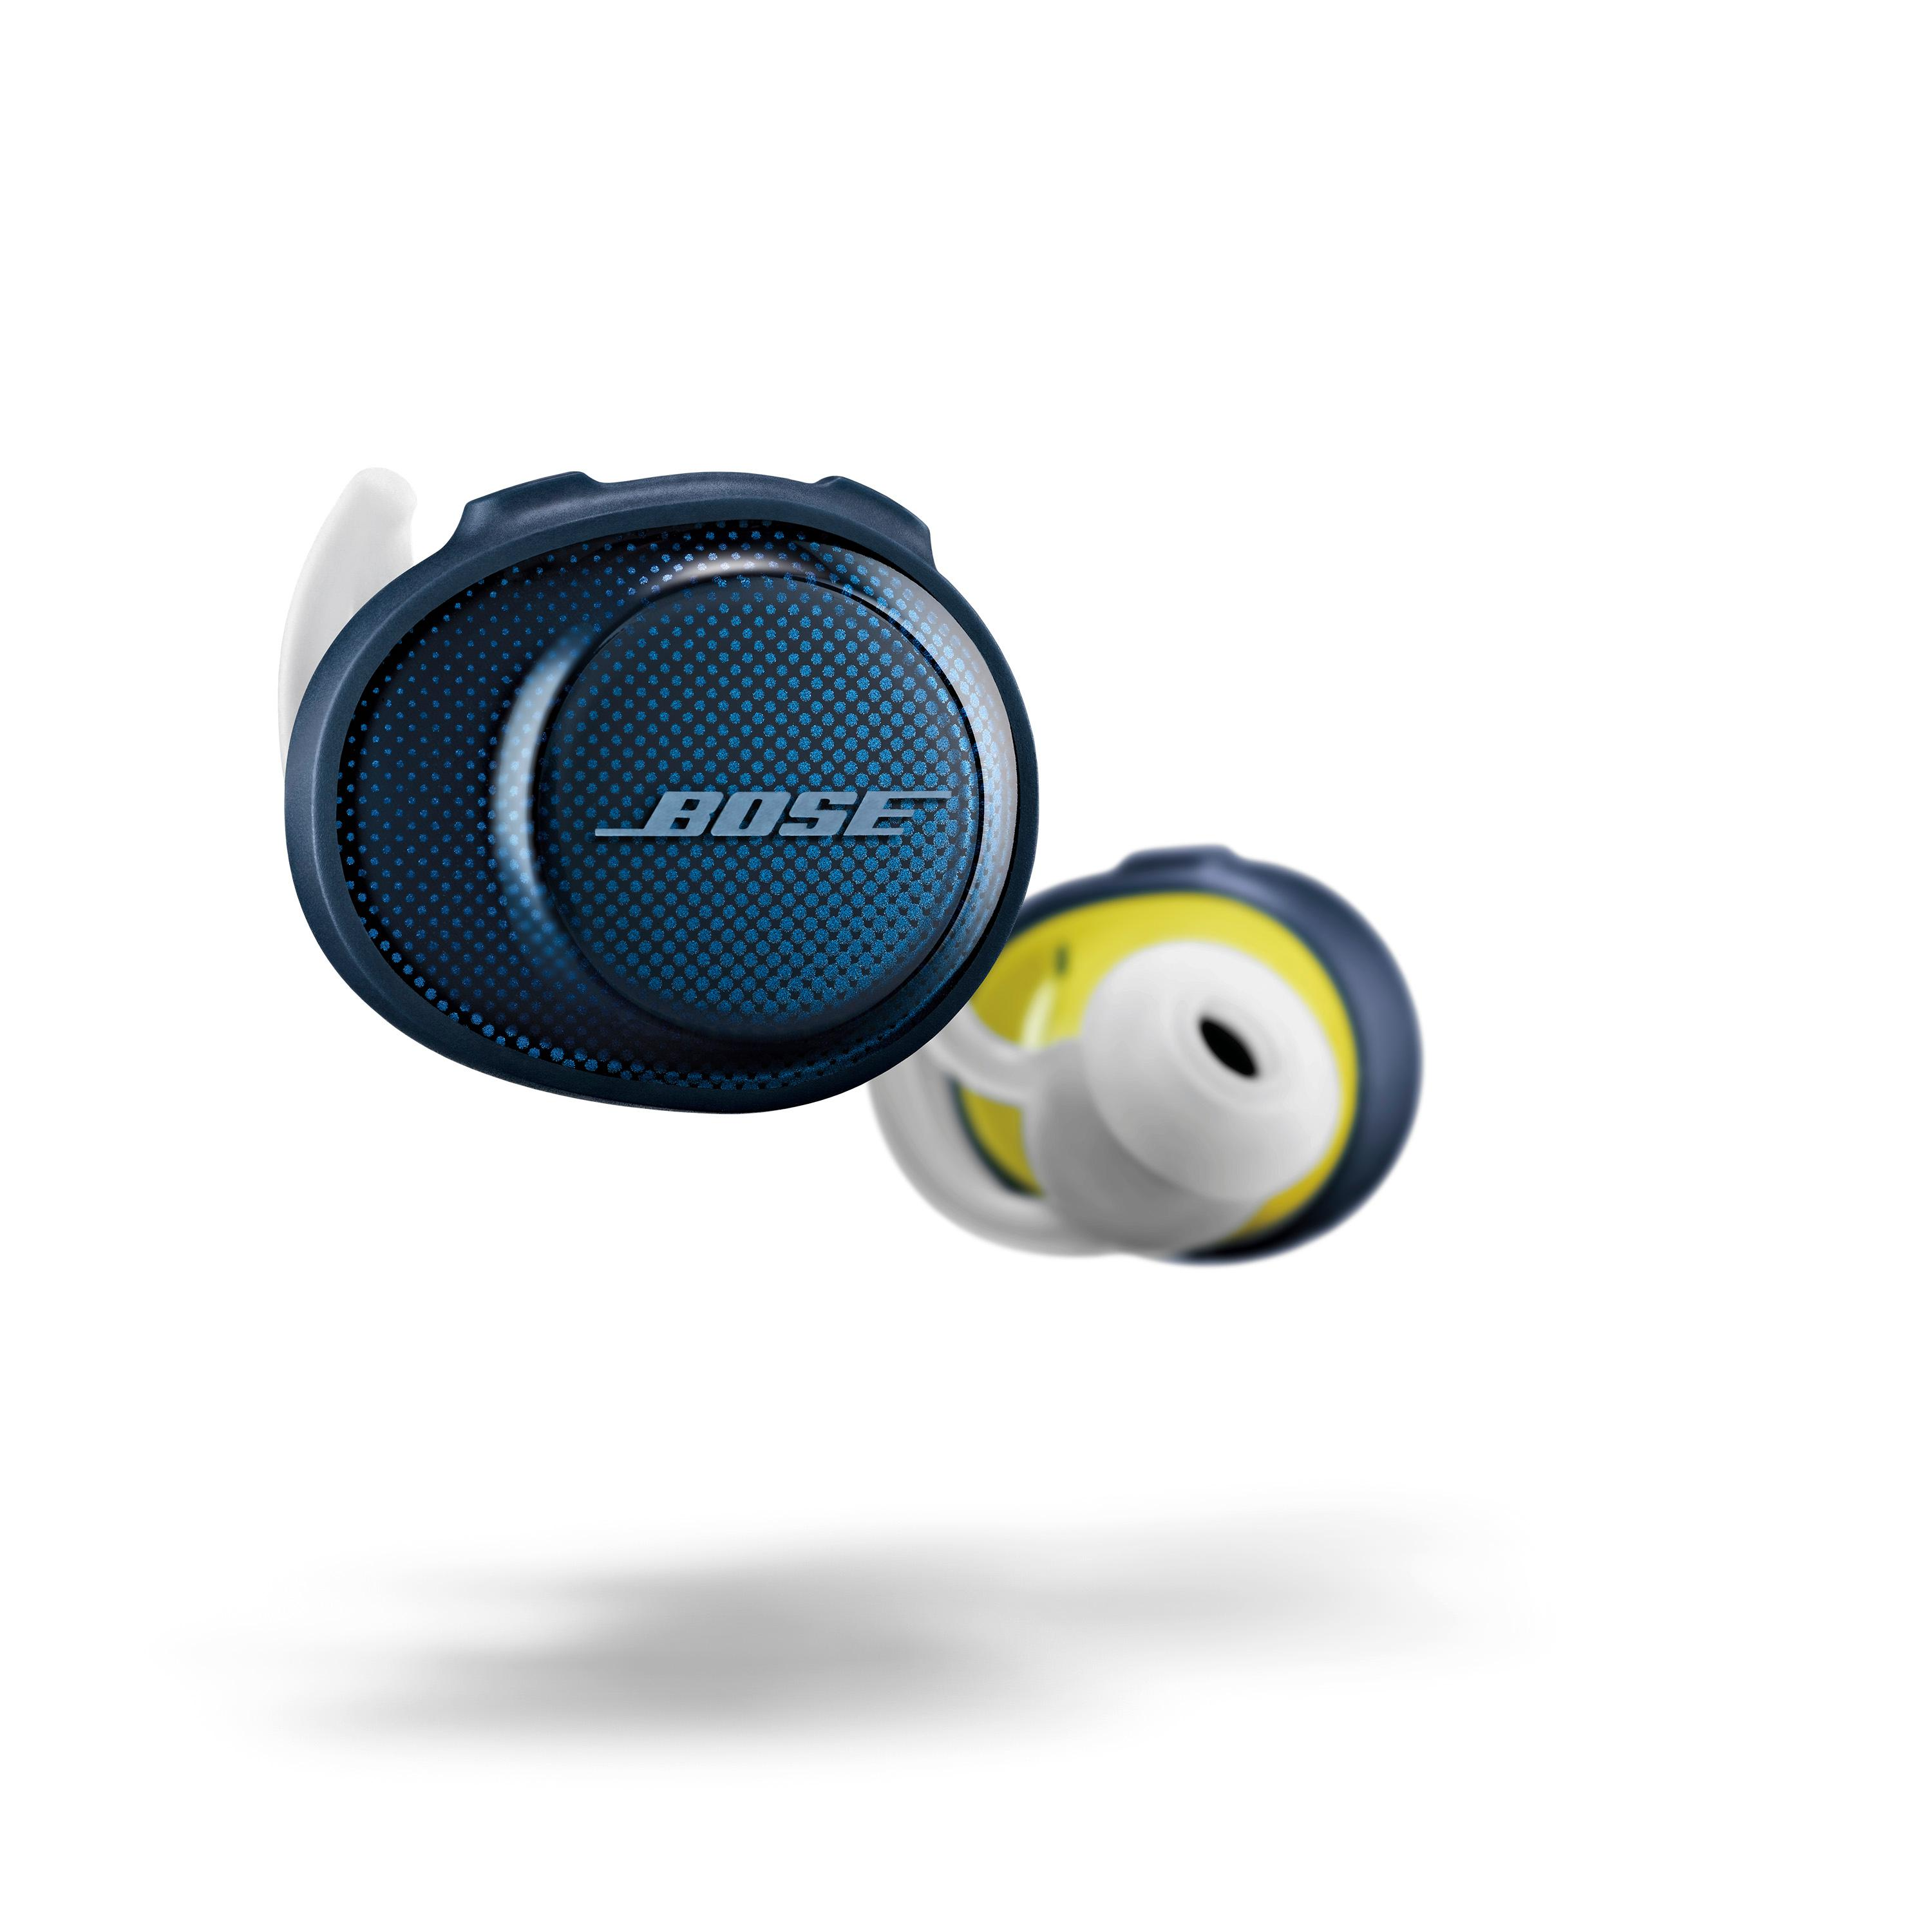 Bose Soundsport Free Wireless Headphones // Price: $249.95 // (Image: Bose)<p></p>